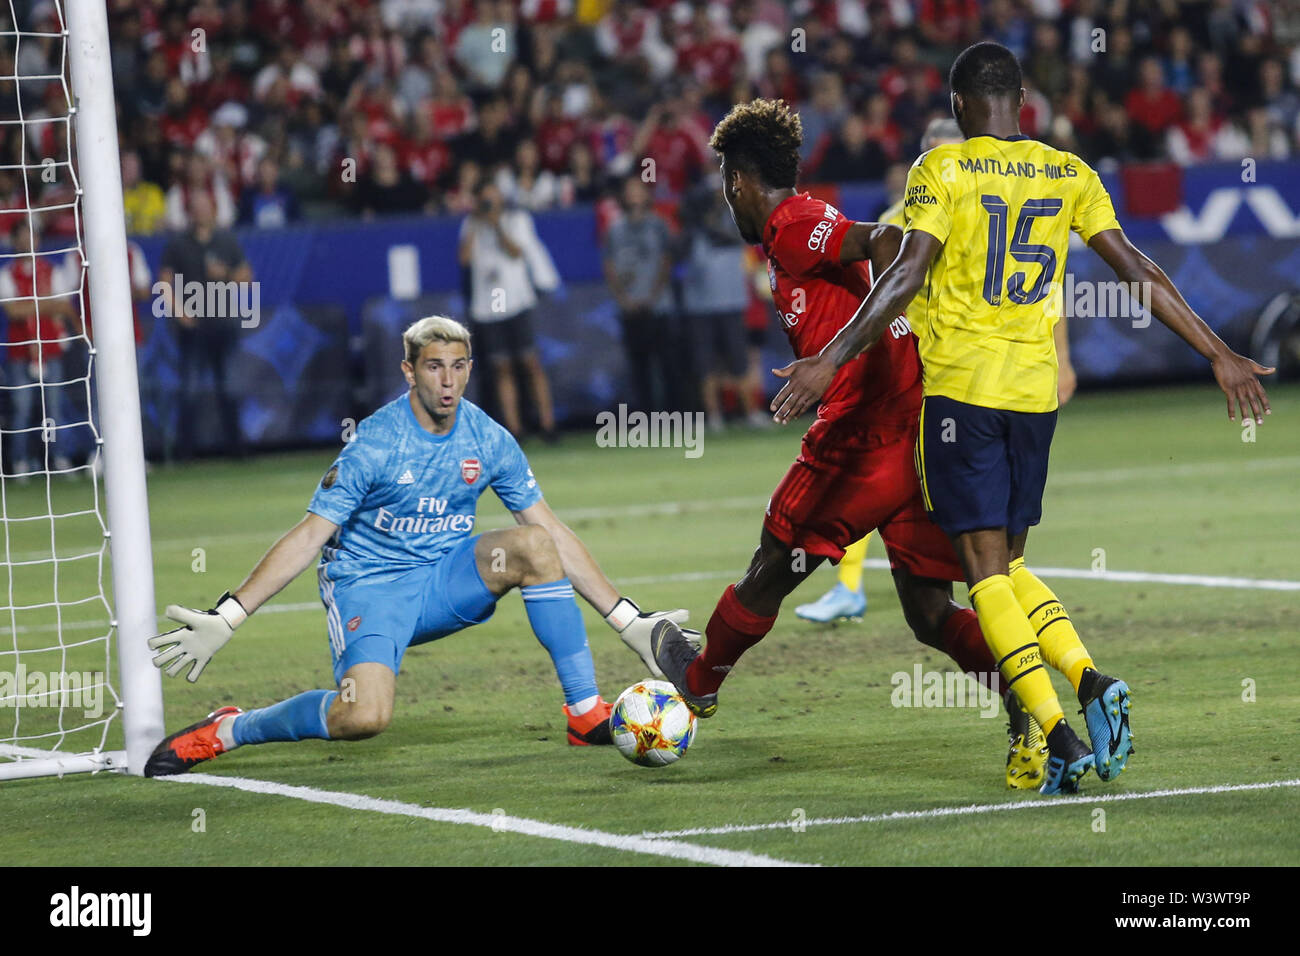 Los Angeles, California, USA. 17th July, 2019. Bayern Munich midfielder Kingsley Coman (29) drives the ball past Arsenal midfielder Ainsley Maitland-Niles (15) and shoots against Arsenal goalkeeper Emiliano Martinez (26) during the 2019 International Champions Cup (ICC) match between Arsenal and Bayern Munich in Carson, California, July 17, 2019. Arsenal won 2-1. Credit: Ringo Chiu/ZUMA Wire/Alamy Live News - Stock Image